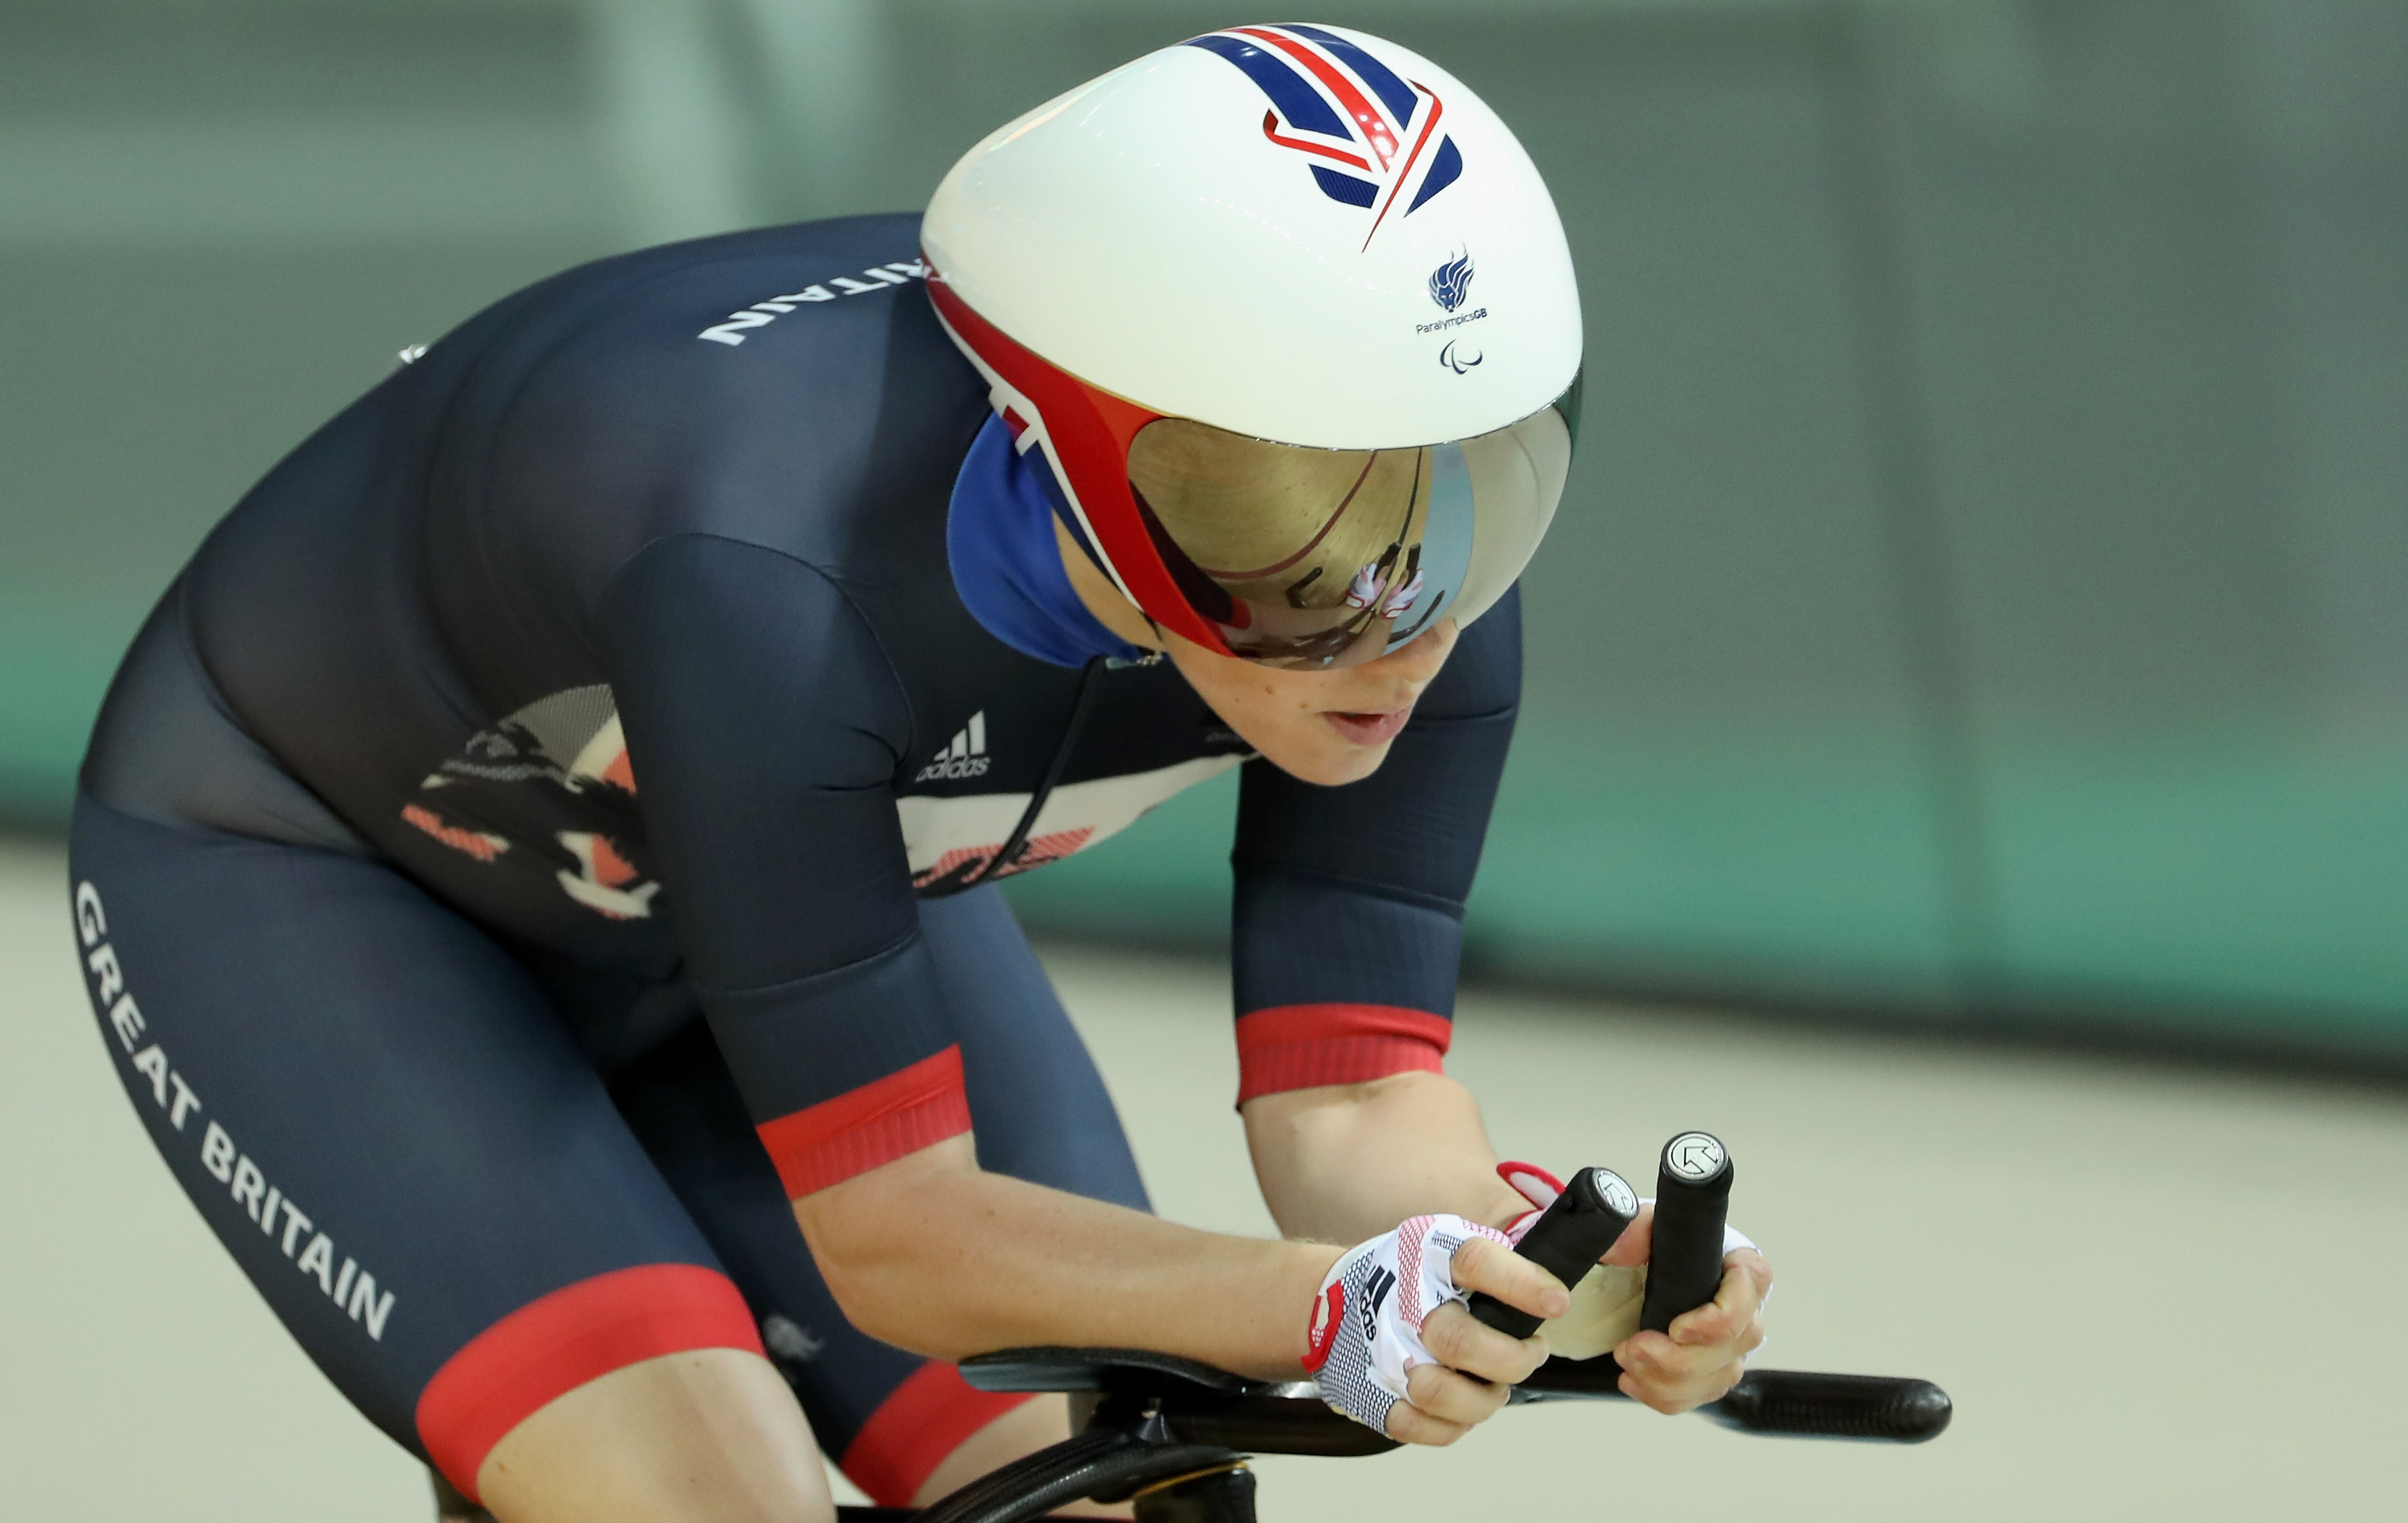 RIO DE JANEIRO, BRAZIL - SEPTEMBER 08: Megan Giglia of Great Britain compets during womens C1-2-3 3000m individual pursuit track cycling on day 1 of the Rio 2016 Paralympic Games the Olympic Velodrome on September 8, 2016 in Rio de Janeiro, Rio de Janeiro. (Photo by Friedemann Vogel/Getty Images)